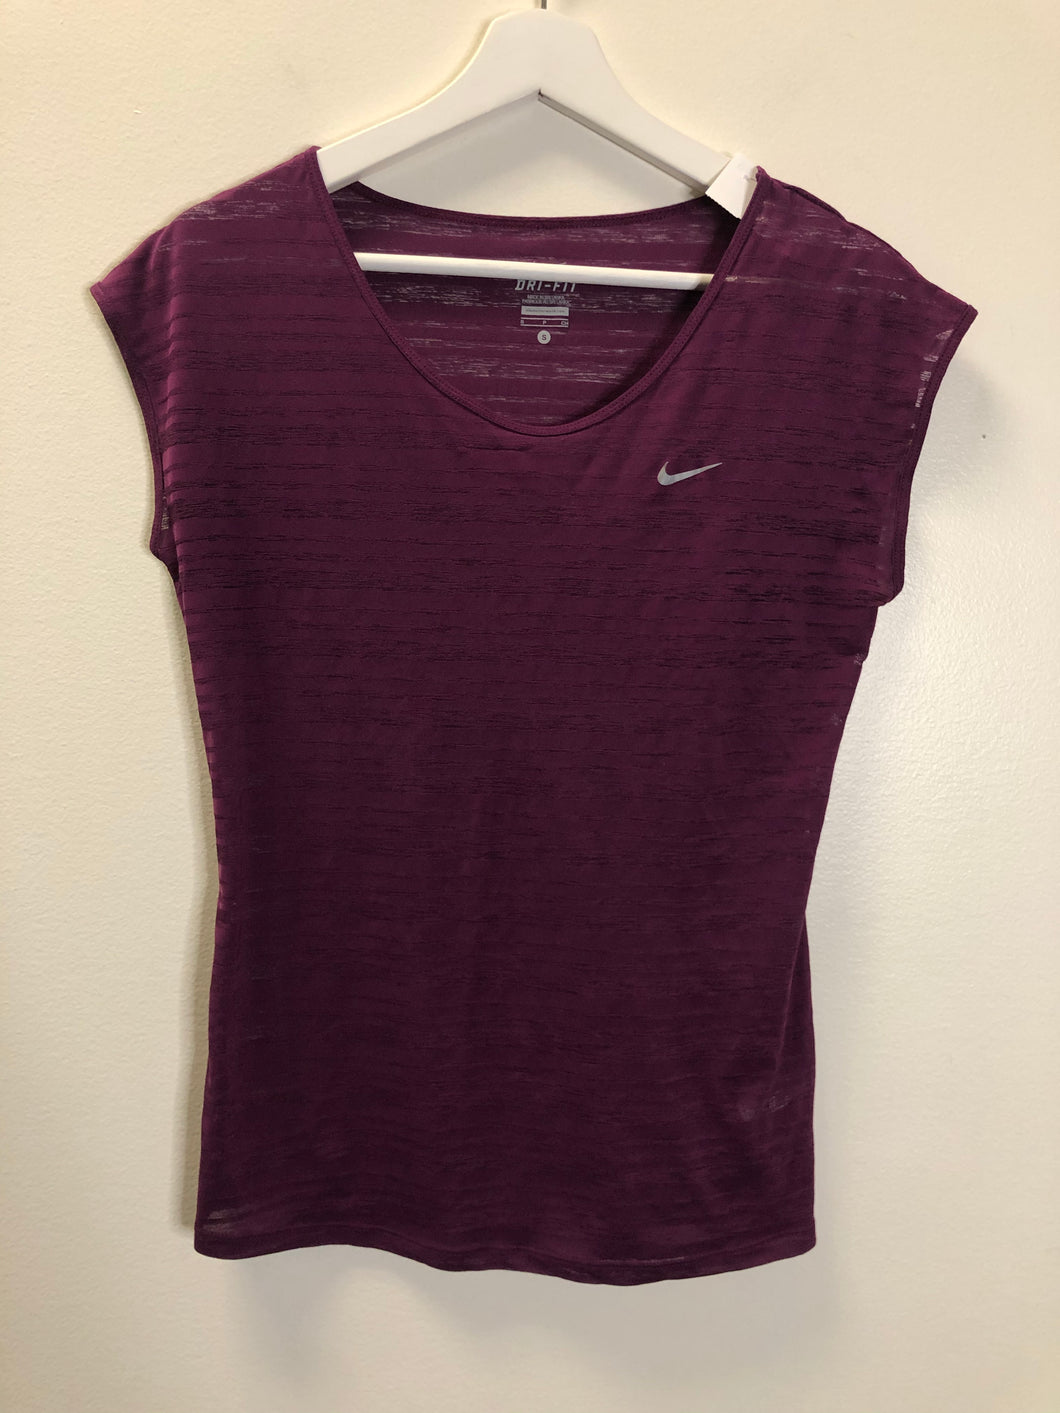 Gently Used Women's Nike Top Size S